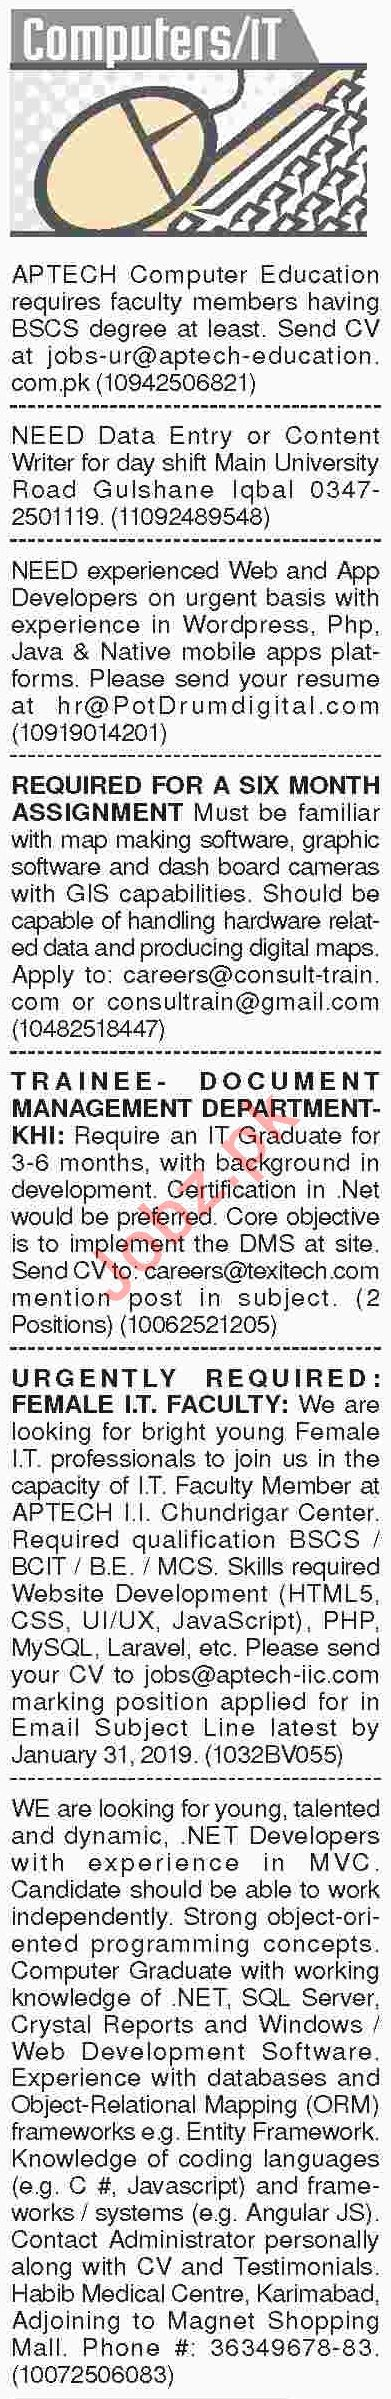 Dawn Sunday Classified Ads 20th Jan 2019 for IT Staff